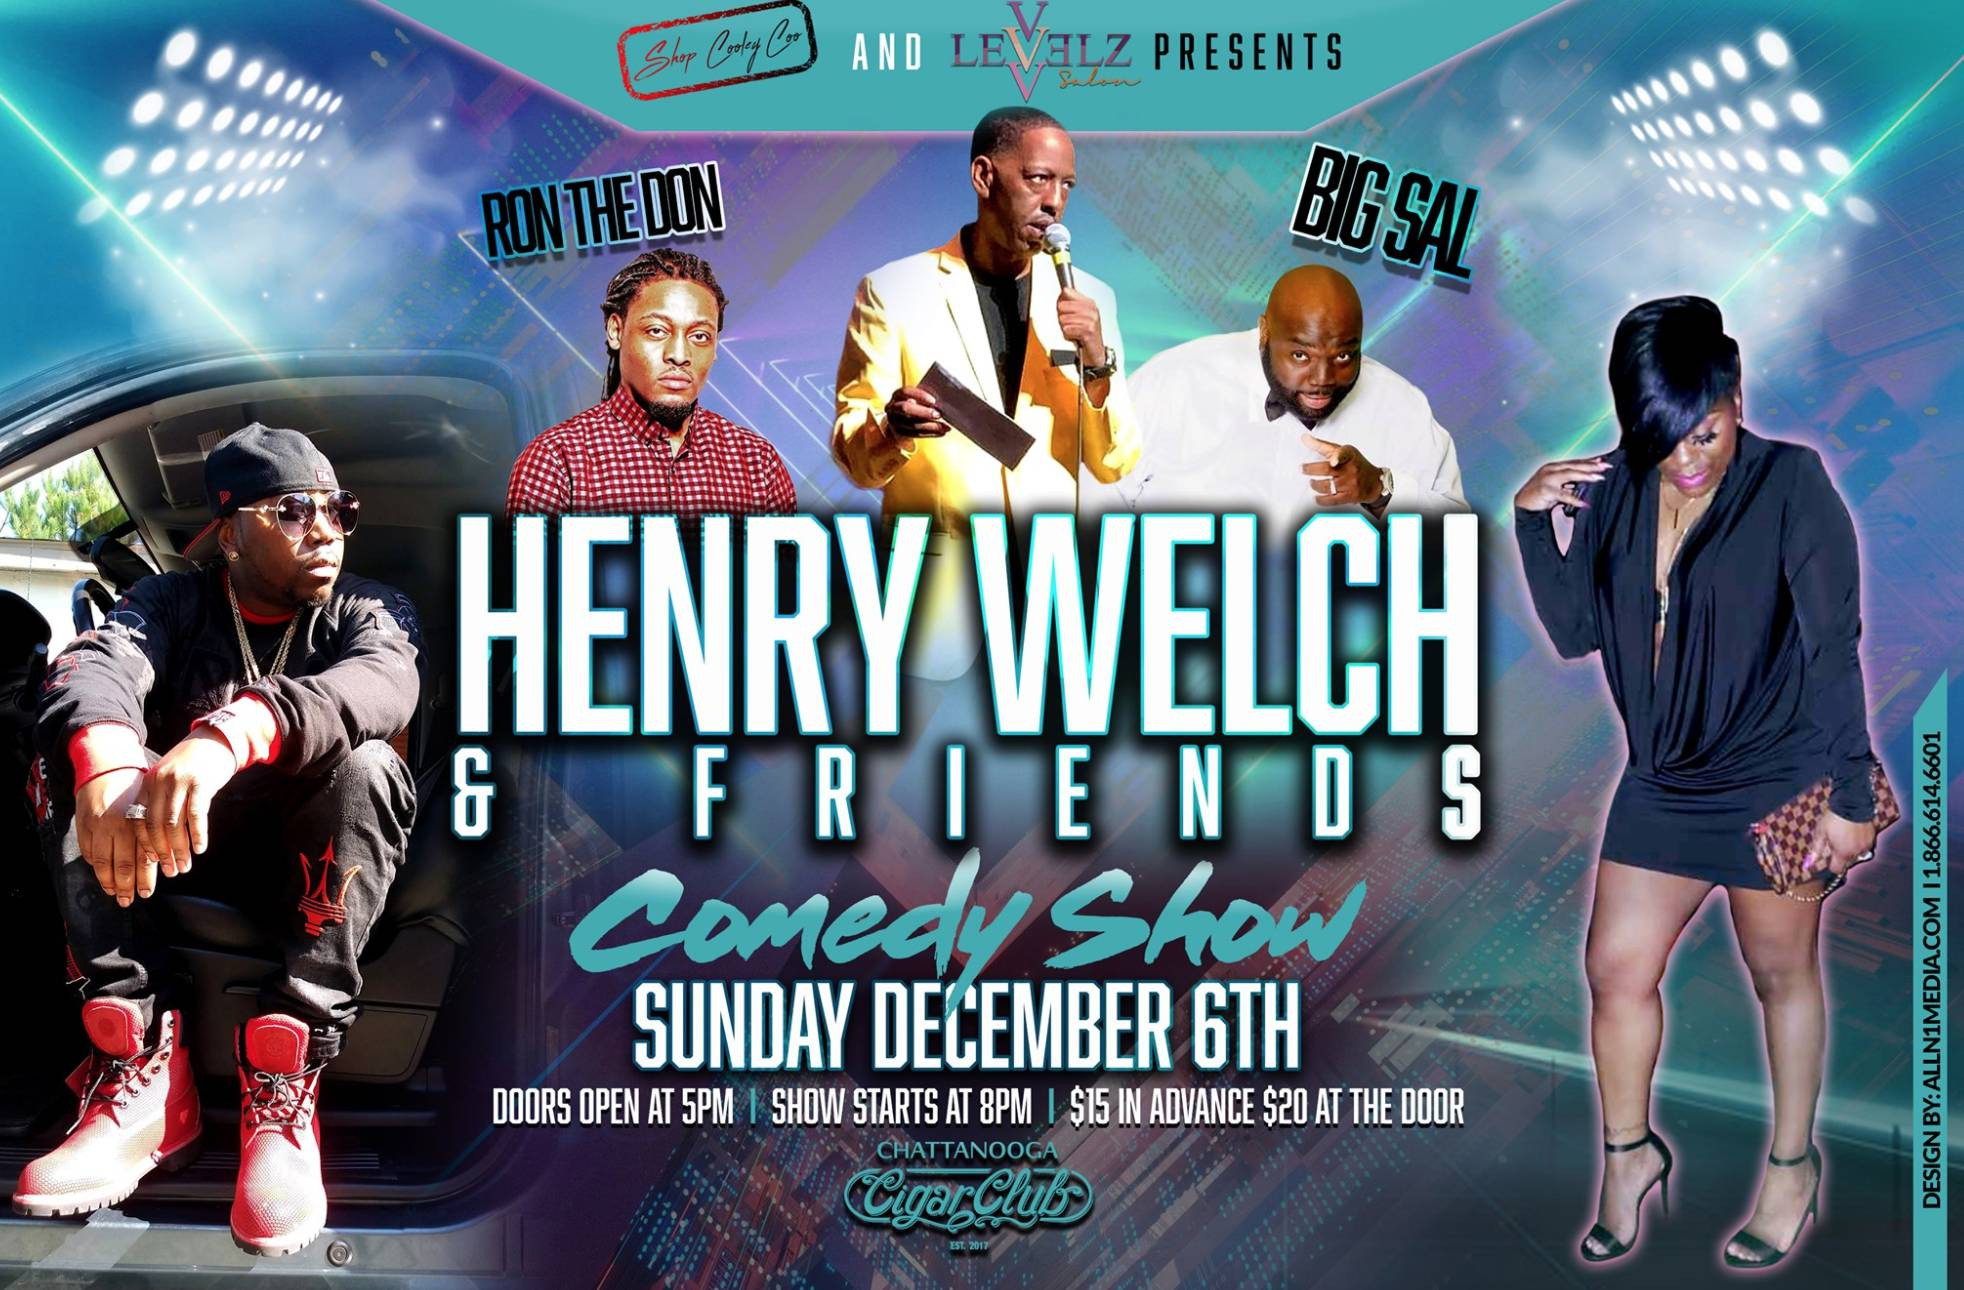 Henry Welch & Friends Comedy Show